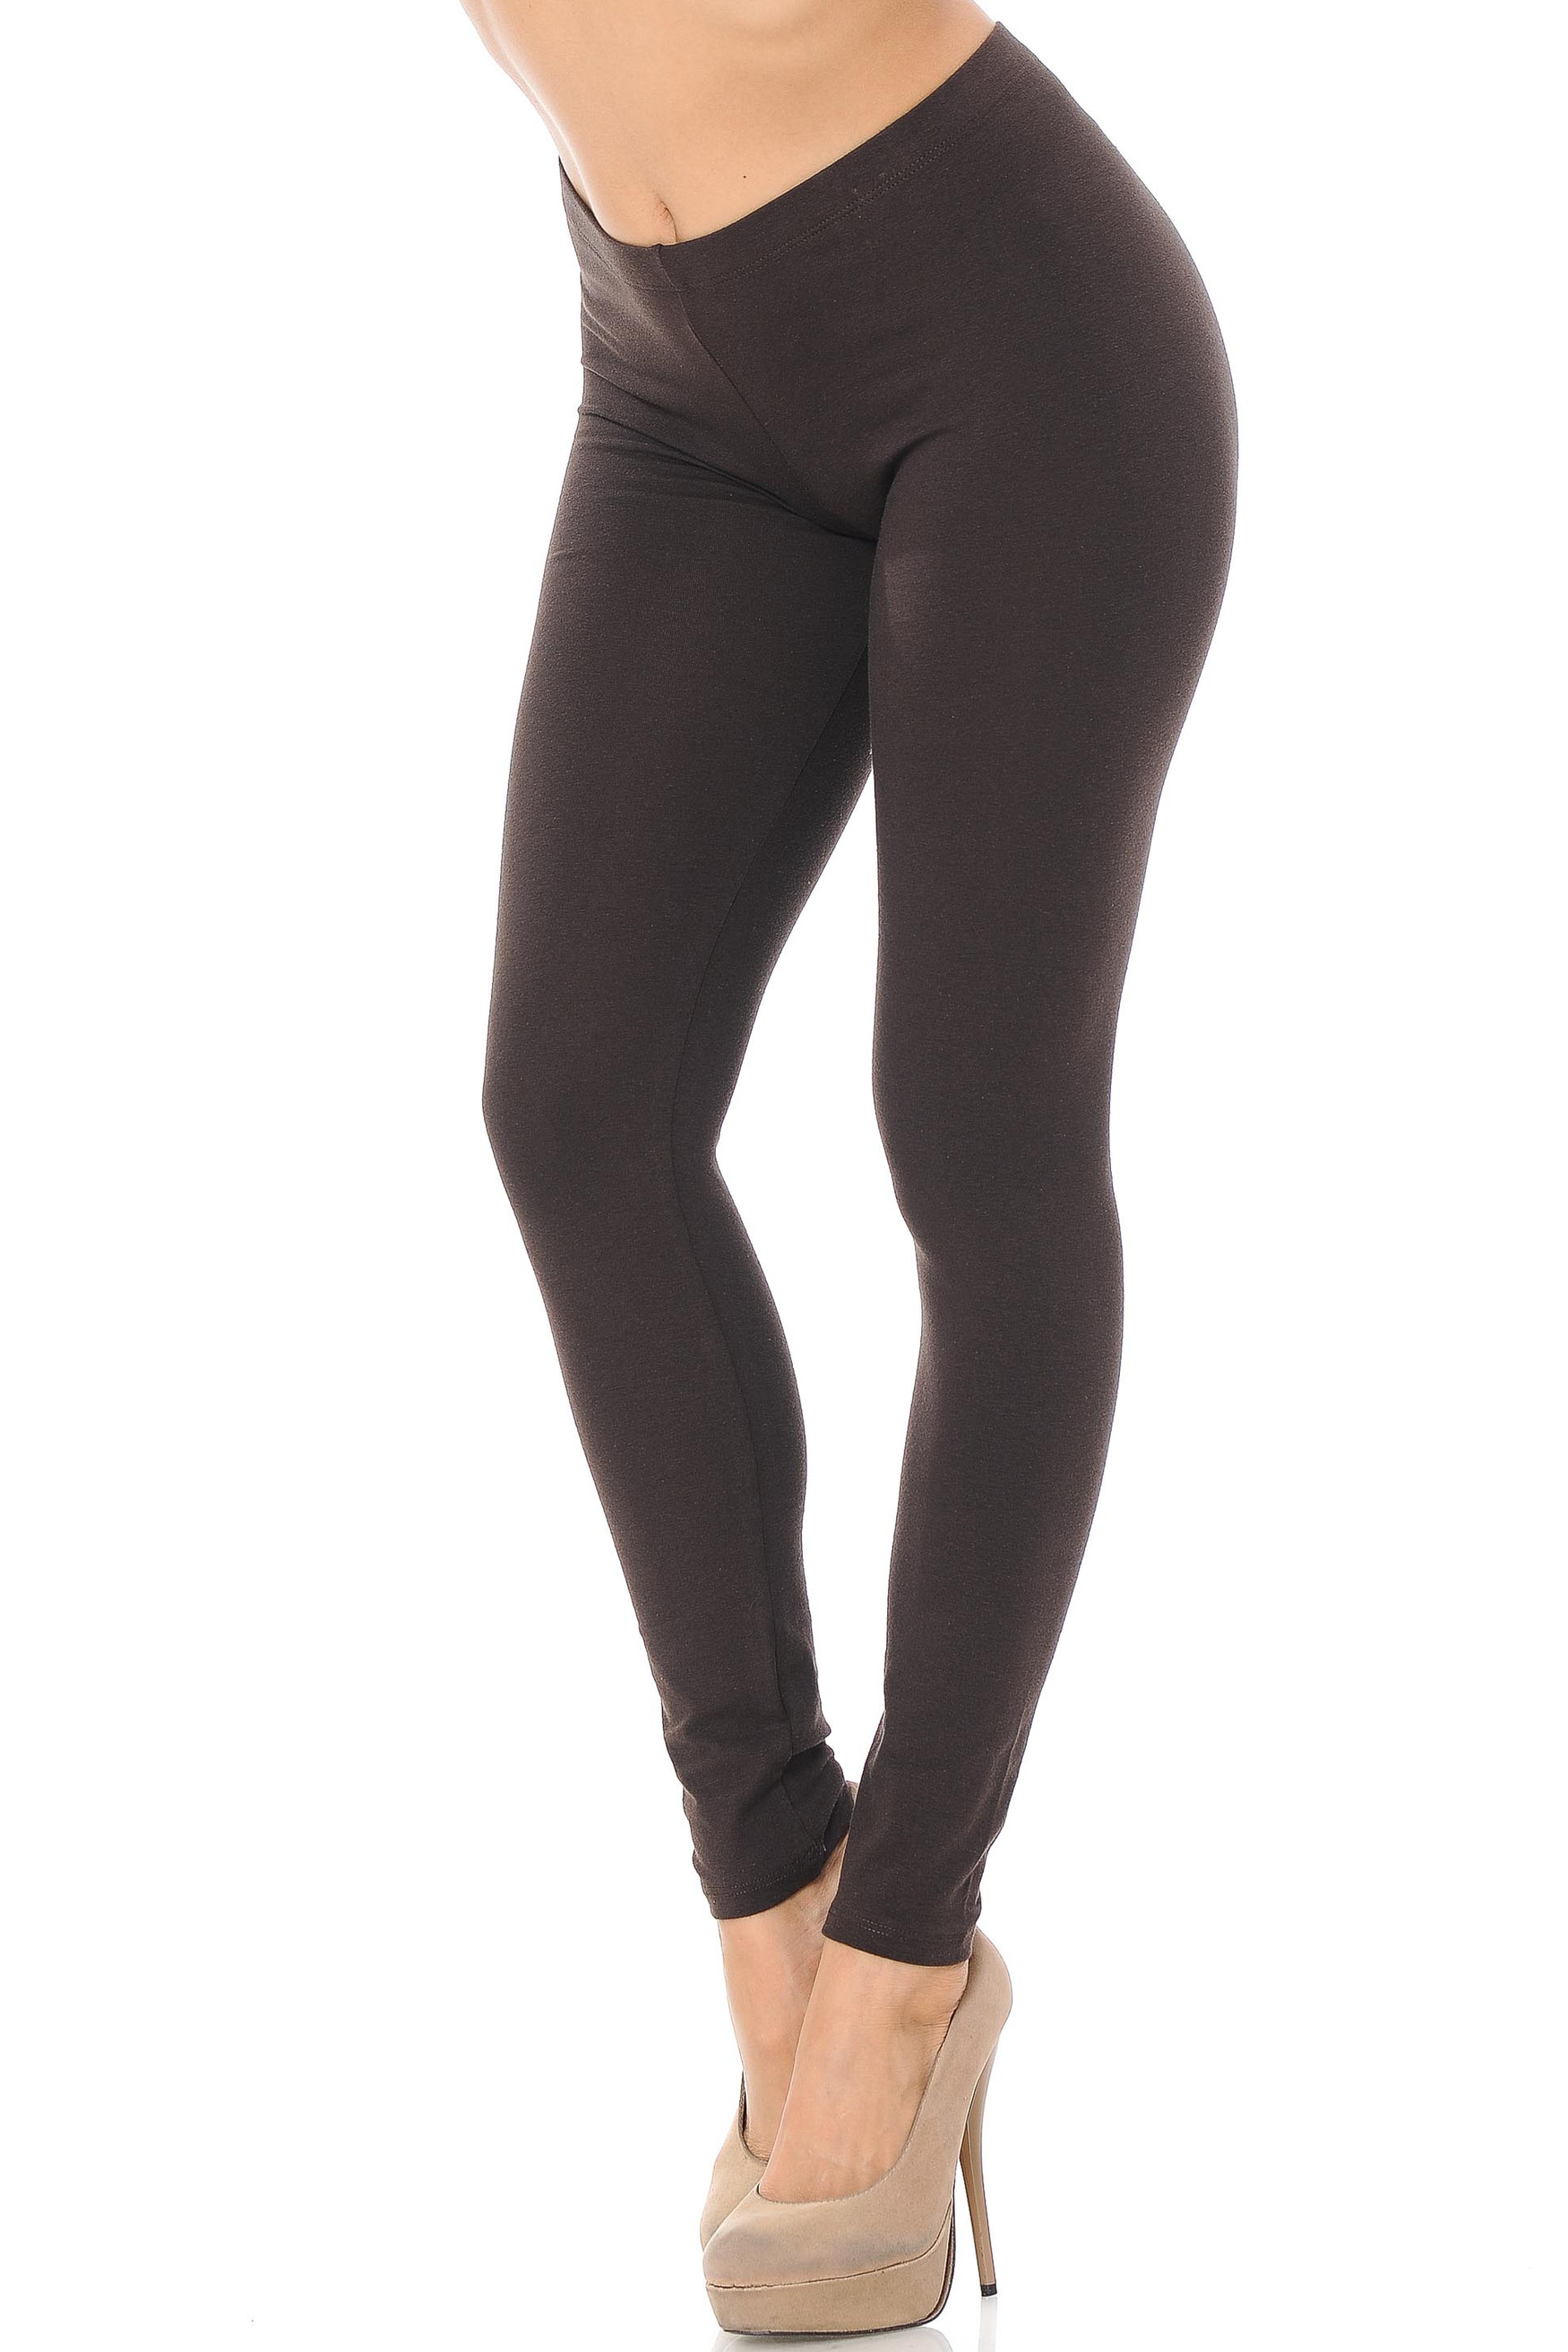 45 degree angle image of female model wearing a brown pair of made in the USA cotton leggings showing  a just below the belly button rise and full length going to the ankles.